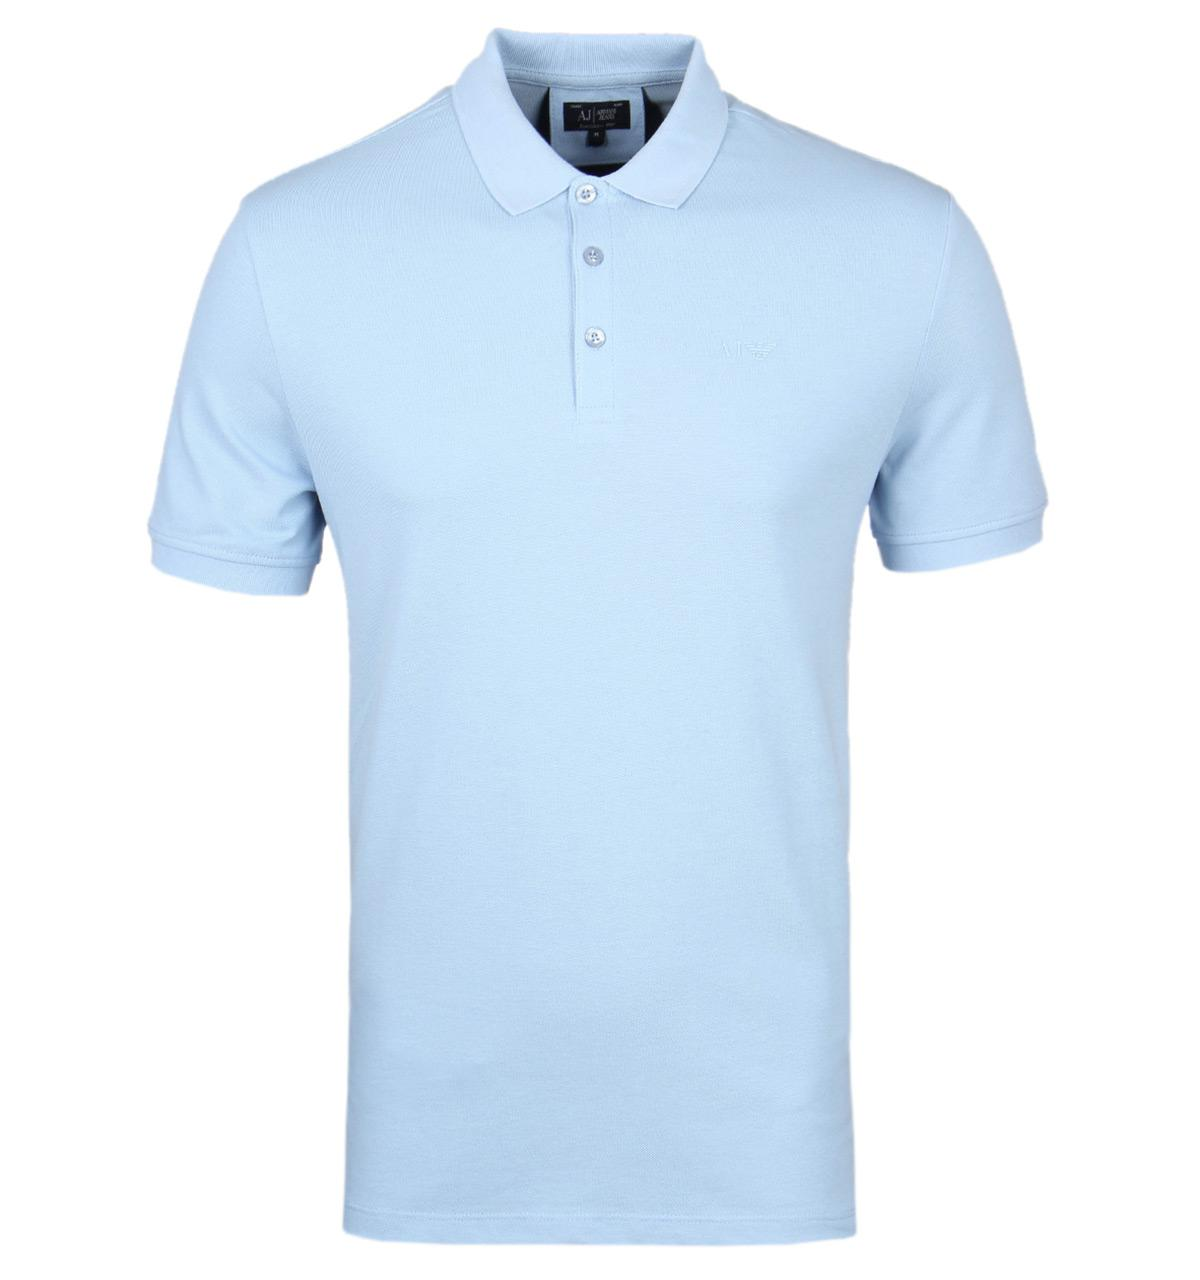 Lyst armani jeans sky blue pique polo shirt in blue for men for Polo shirt and jeans